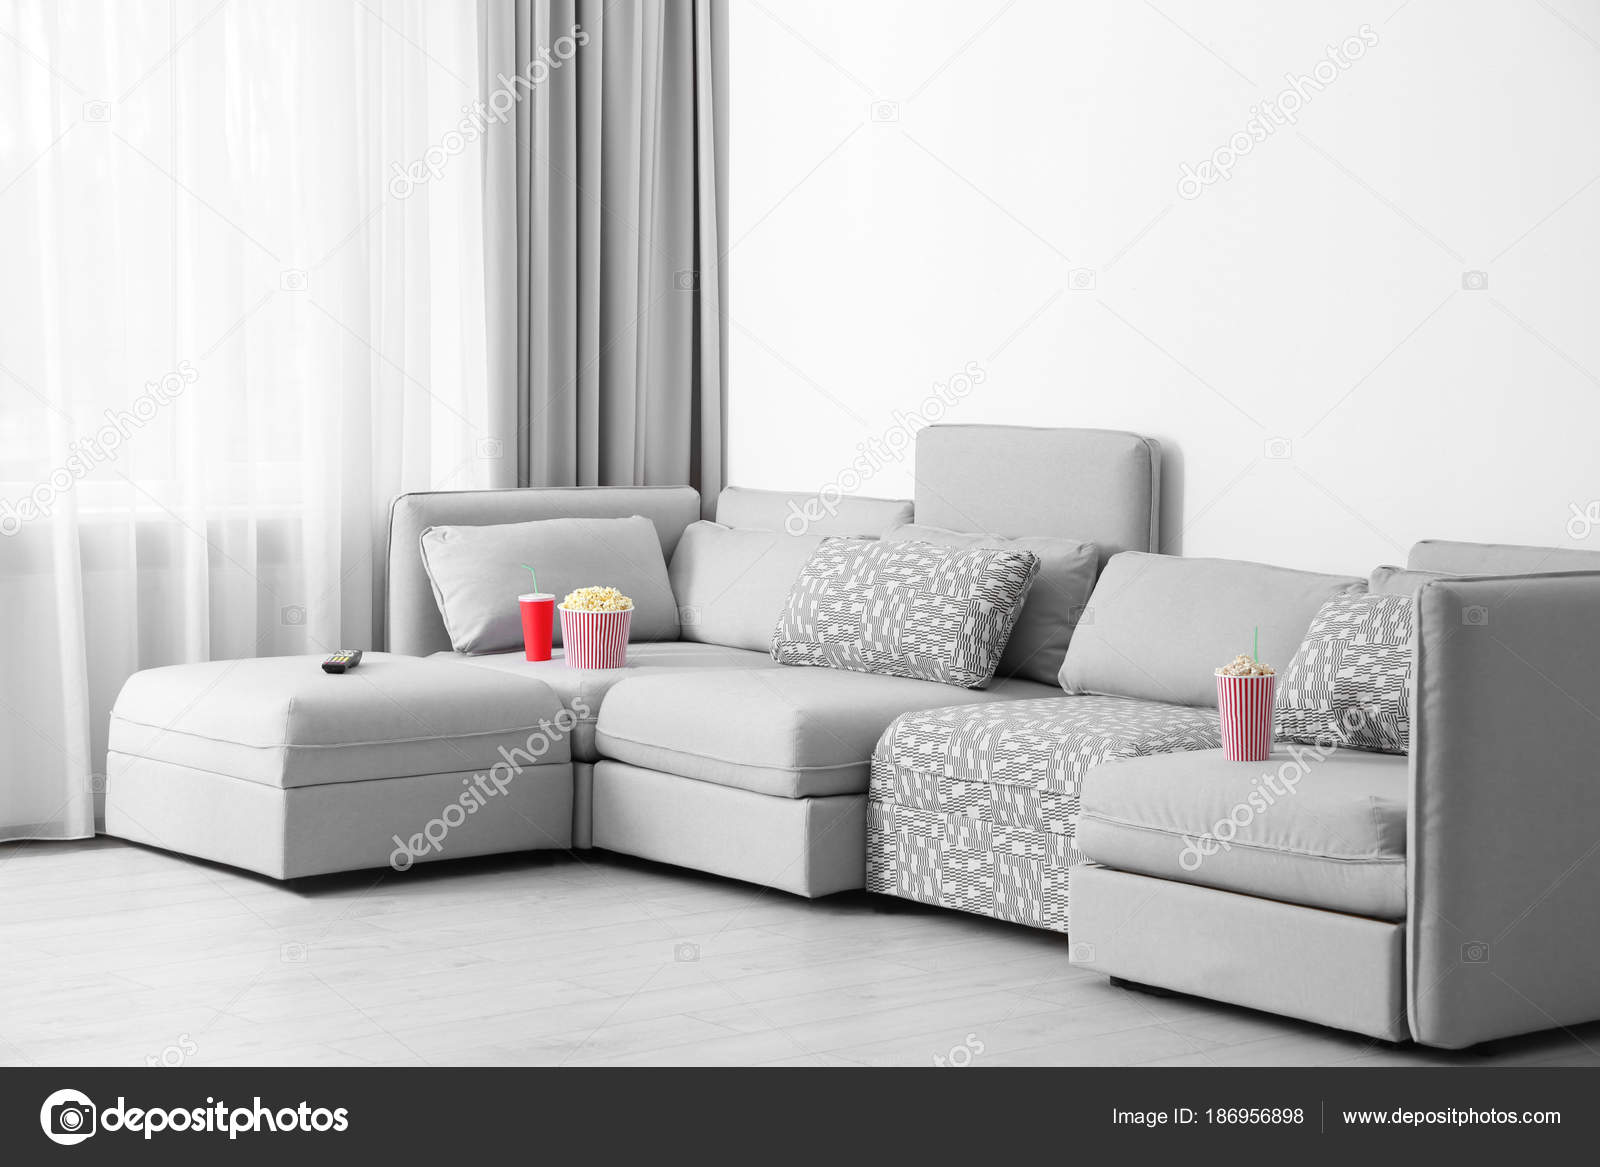 Comfortable Sofa Popcorn Drink Remote Control Home Cinema U2014 Stock Photo